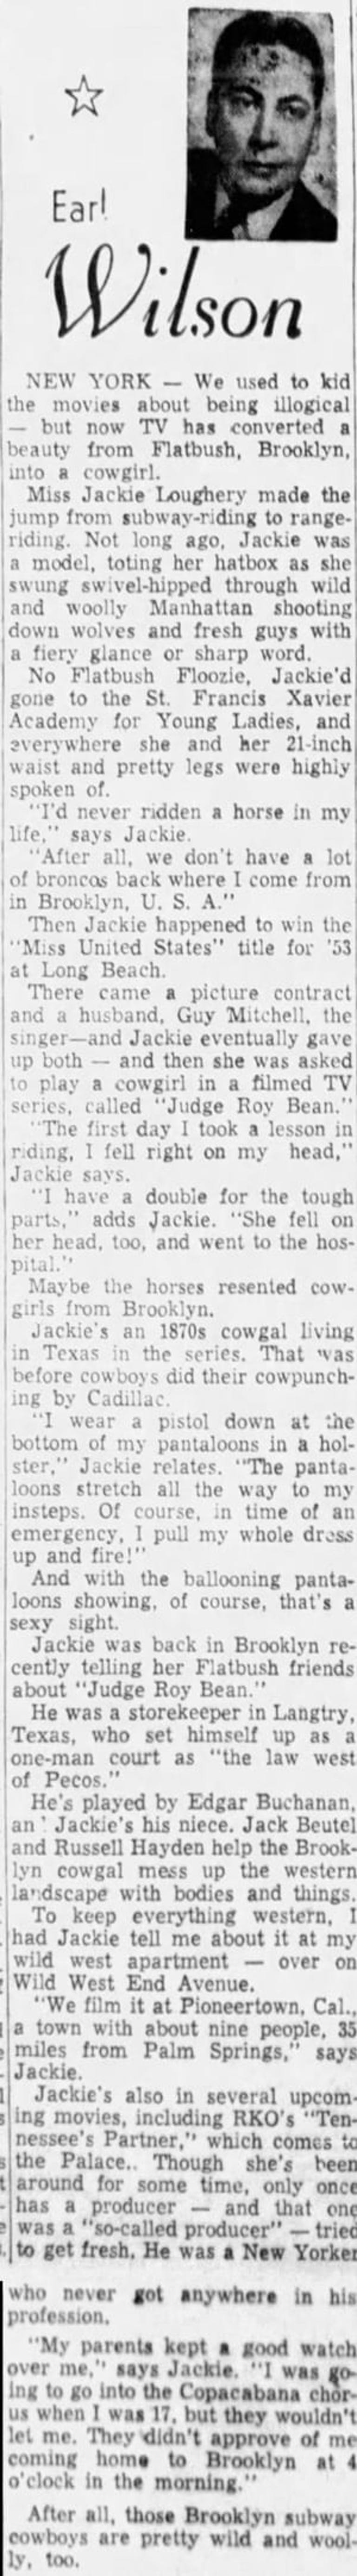 Earl Wilson article clipping